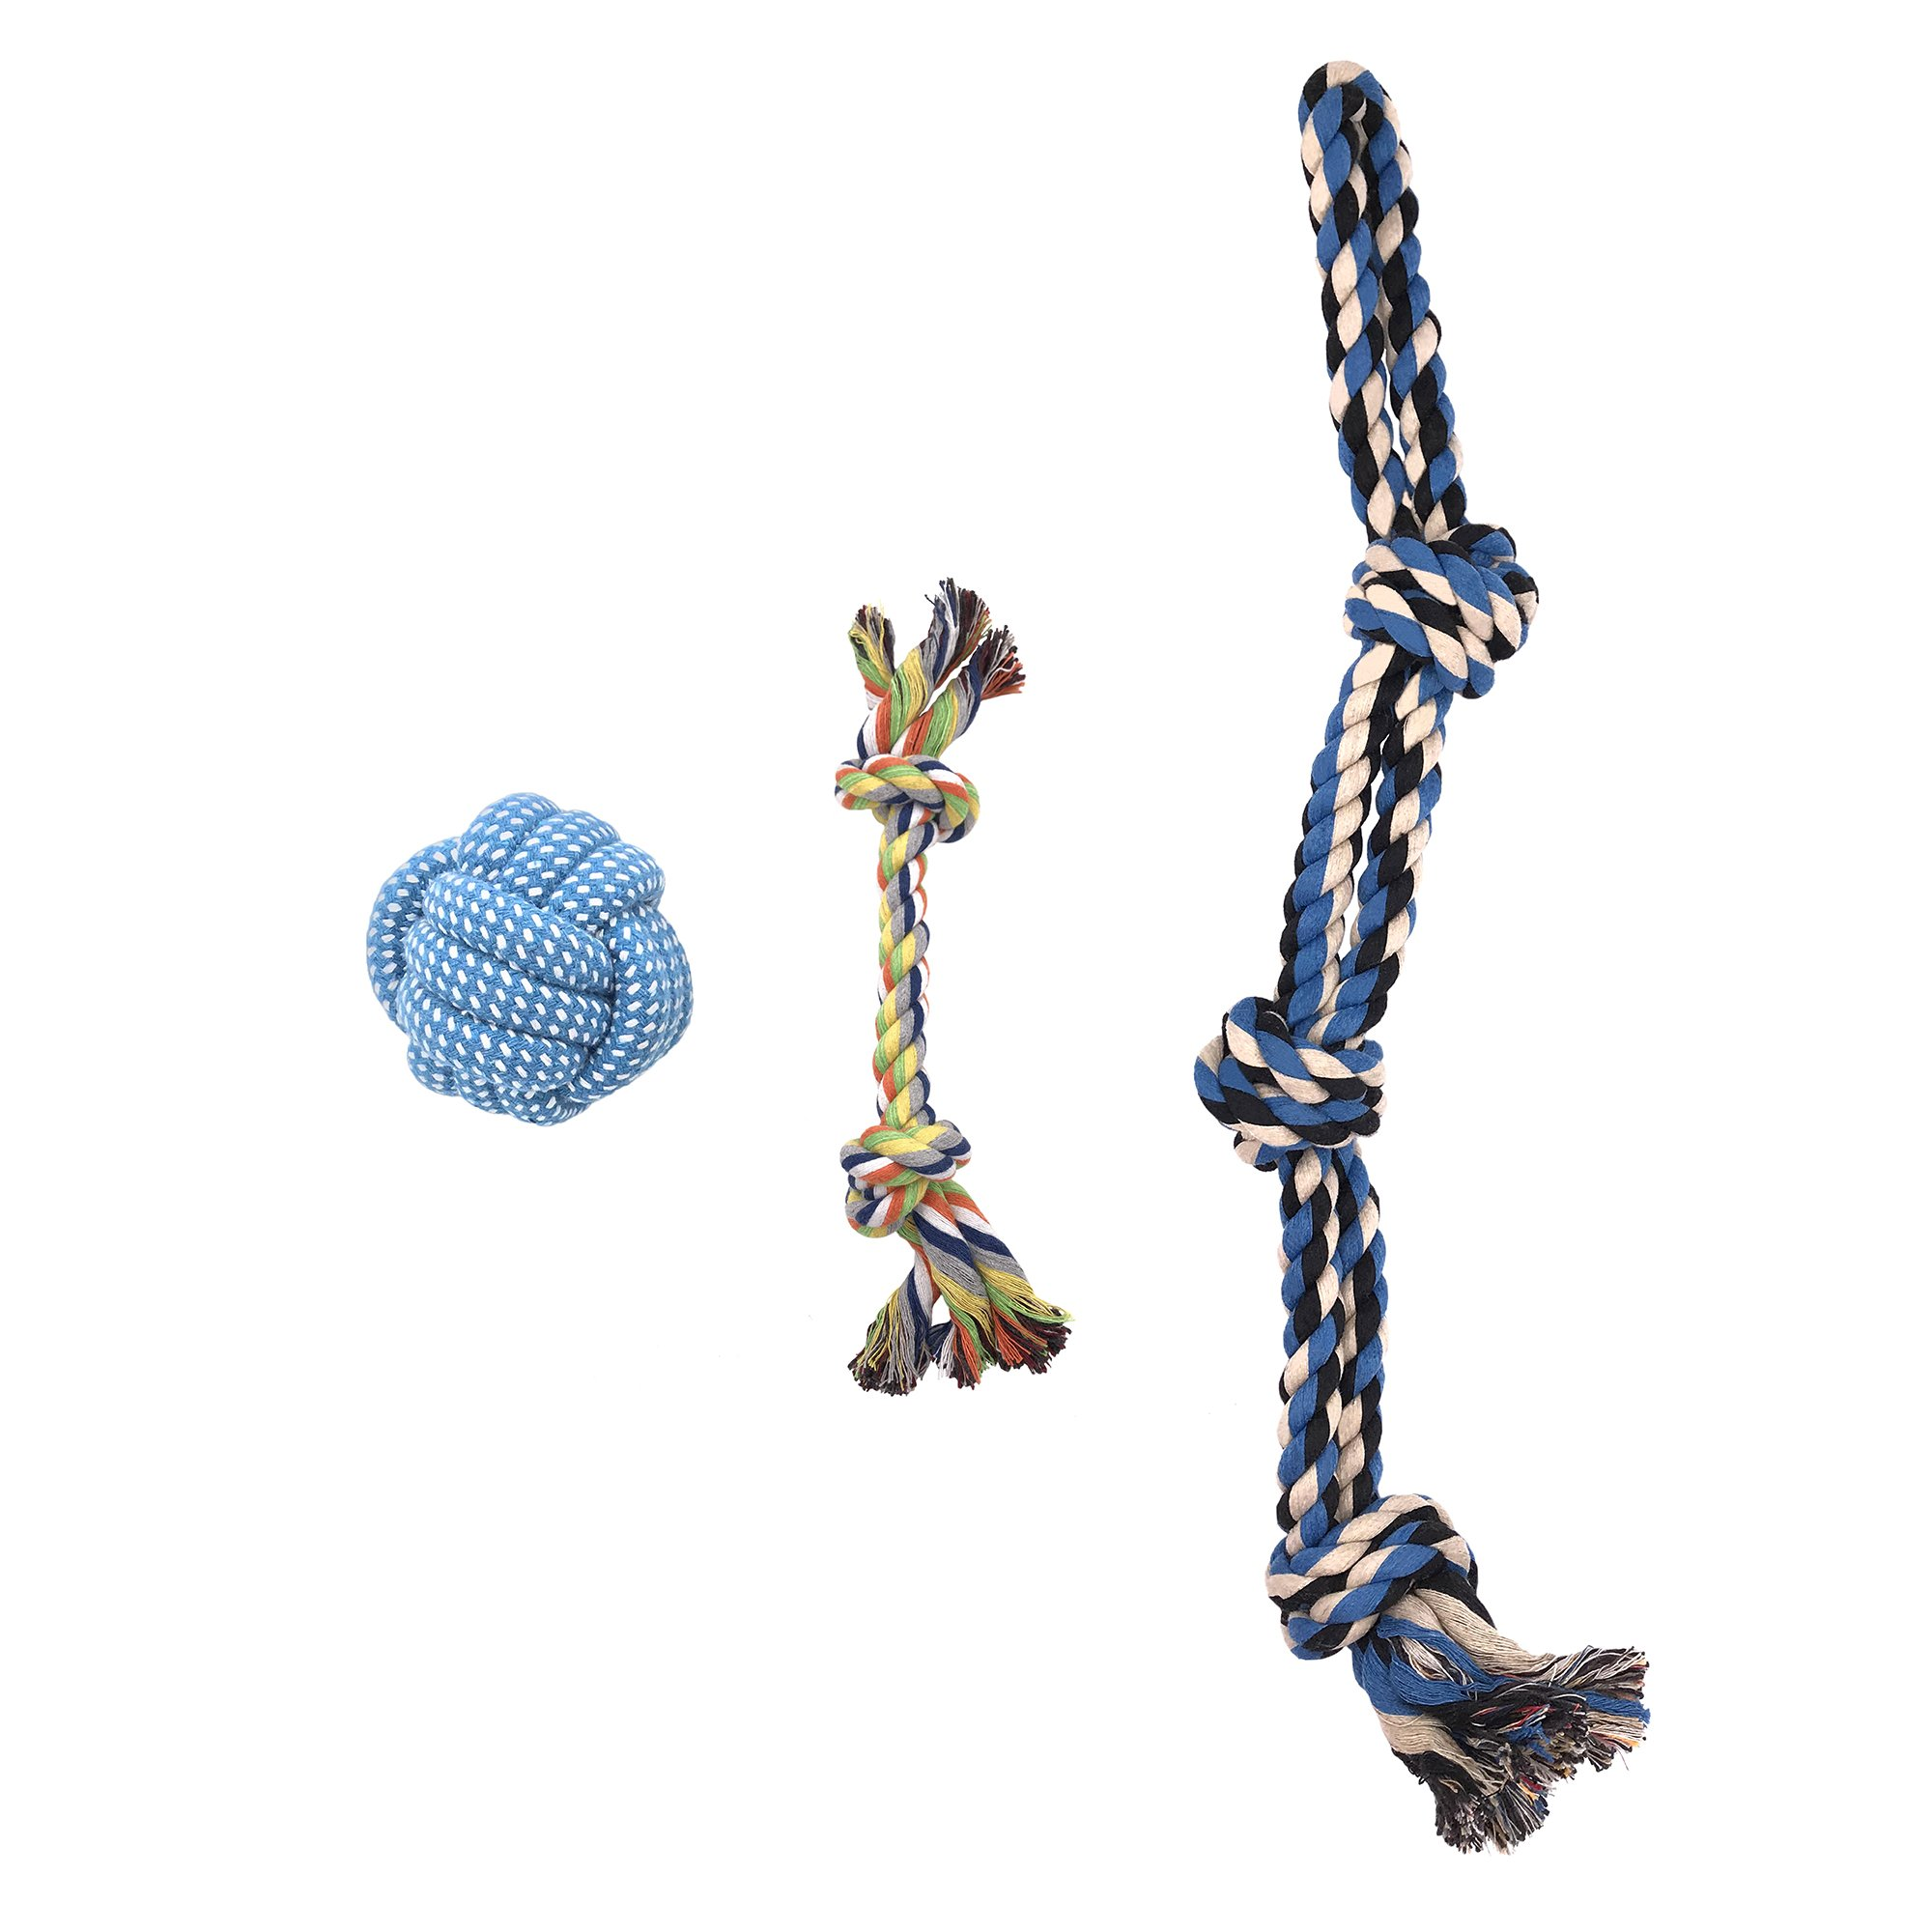 HBGiSi Natural Cotton Rope Puppy Dog Pet Chew Toys Cotton Braided Bones Rope Knot and Dog Balls For Small/Medium/Large Dogs (3)